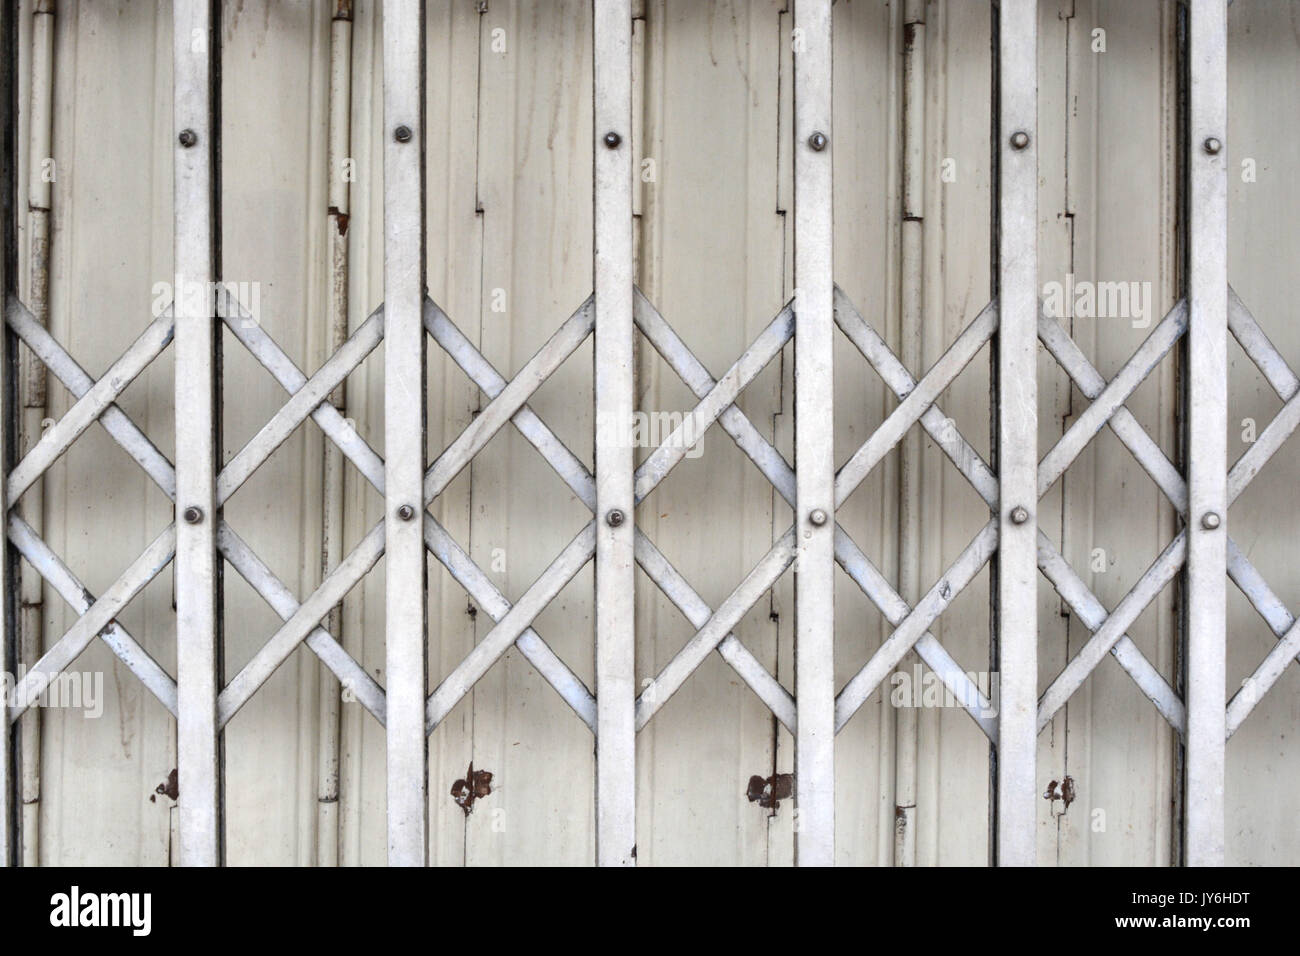 Thai gate House textures.Old steel door. - Stock Image